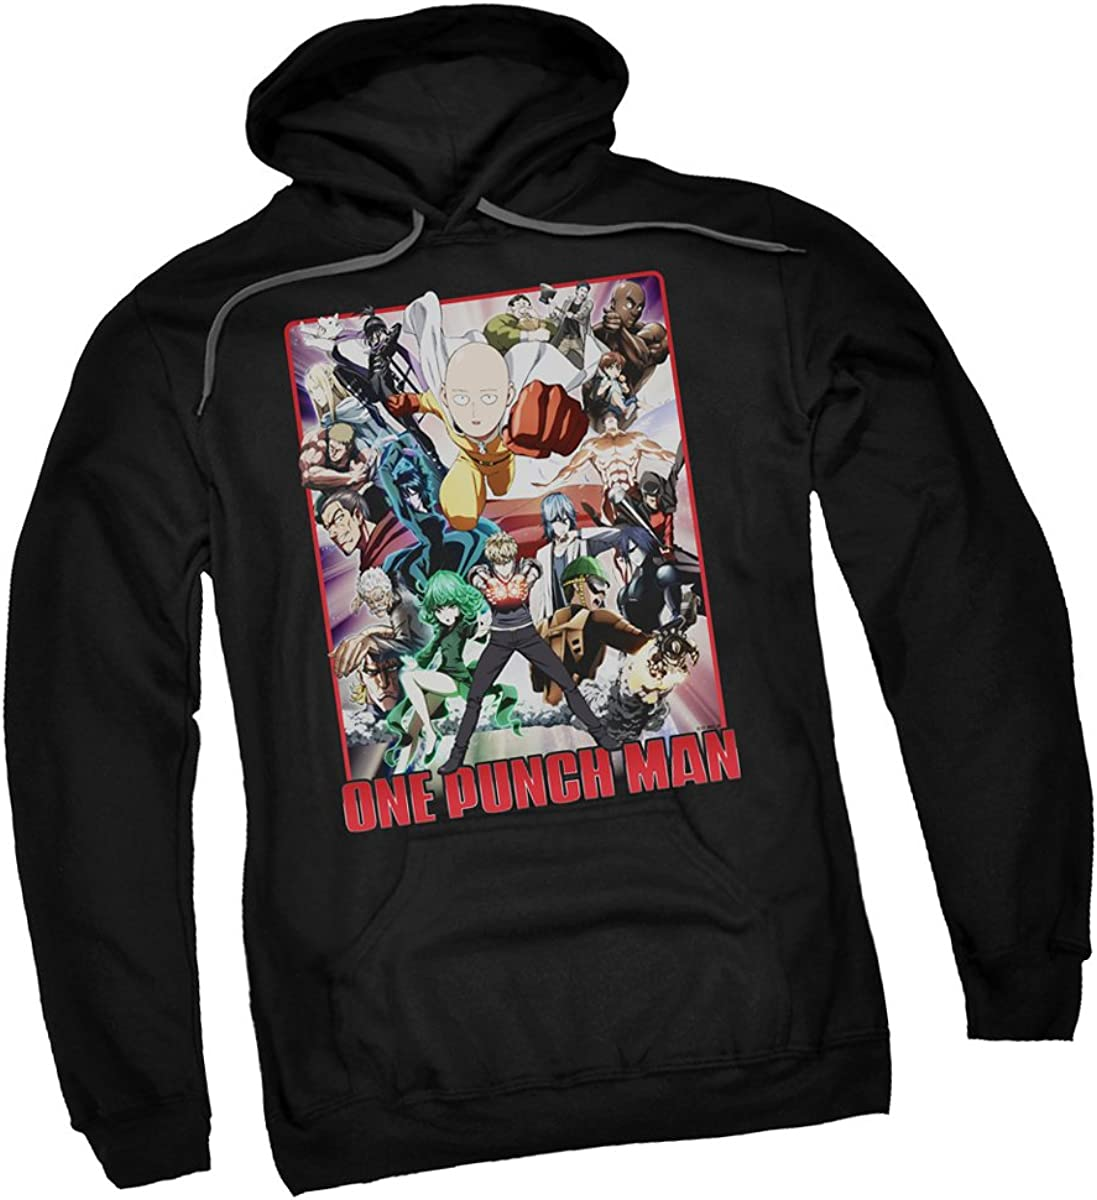 One Punch Man Cast Of Characters Adult Hoodie